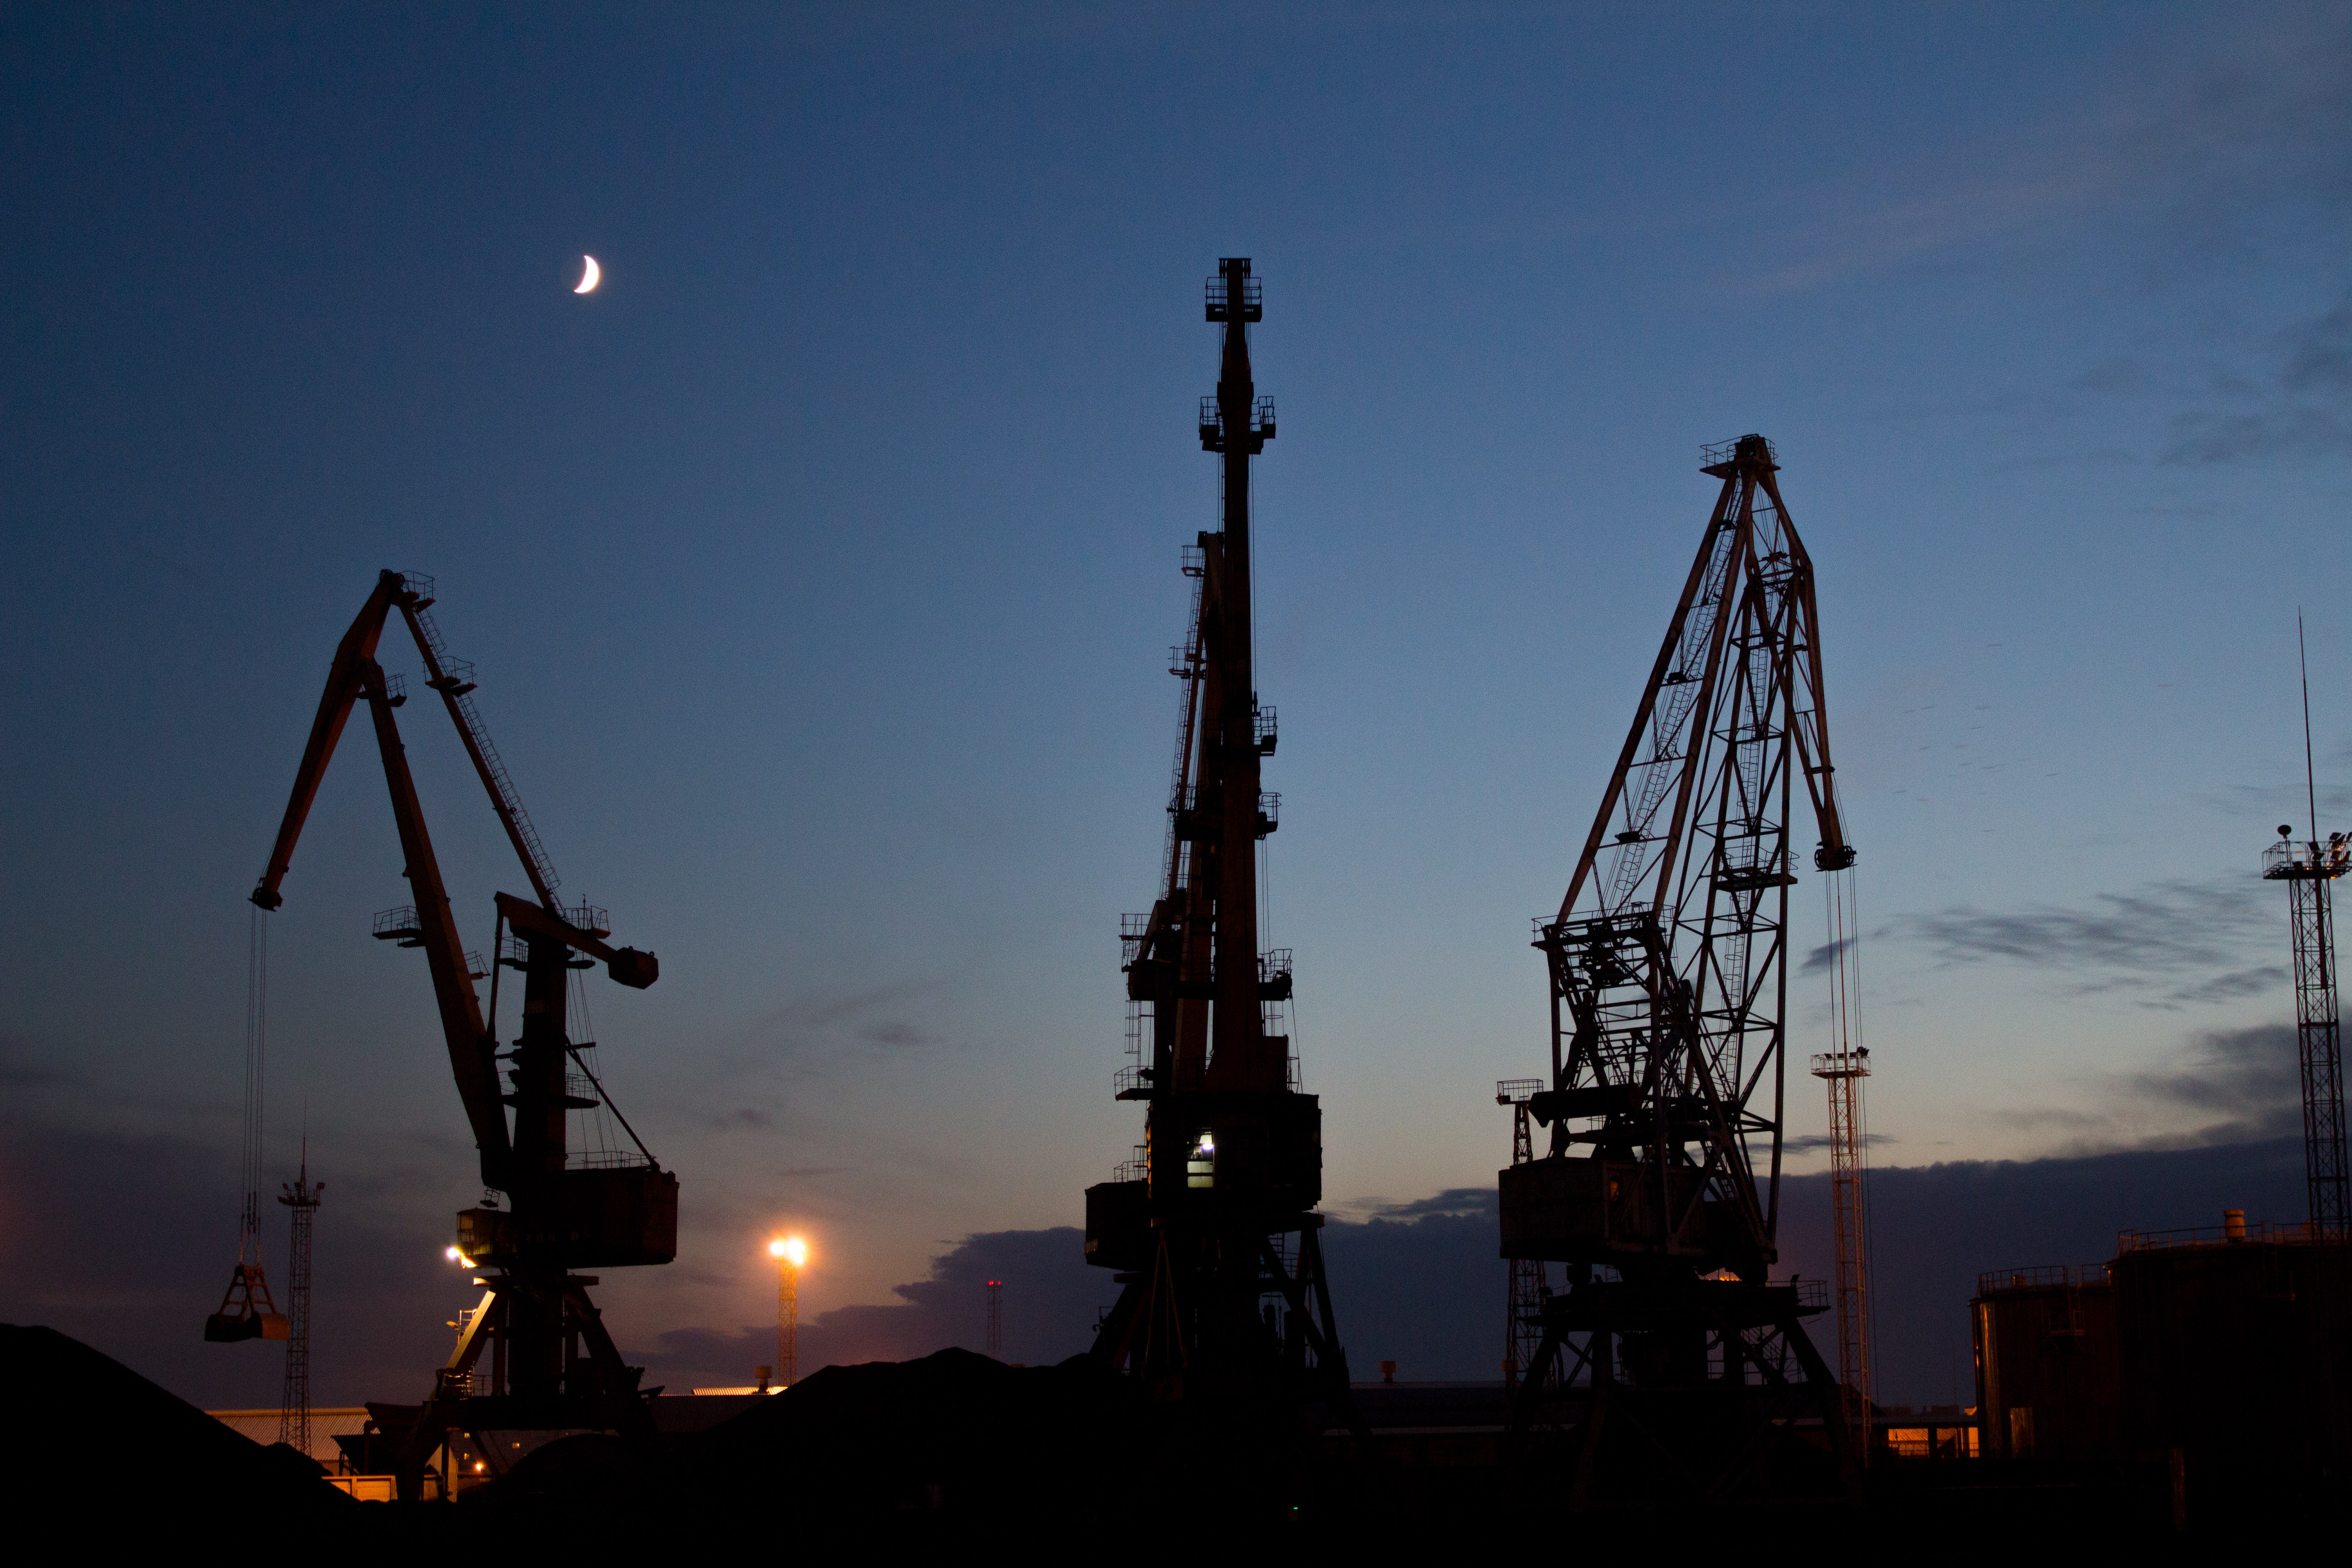 Whose supply chain is more sustainable, BP or Shell?